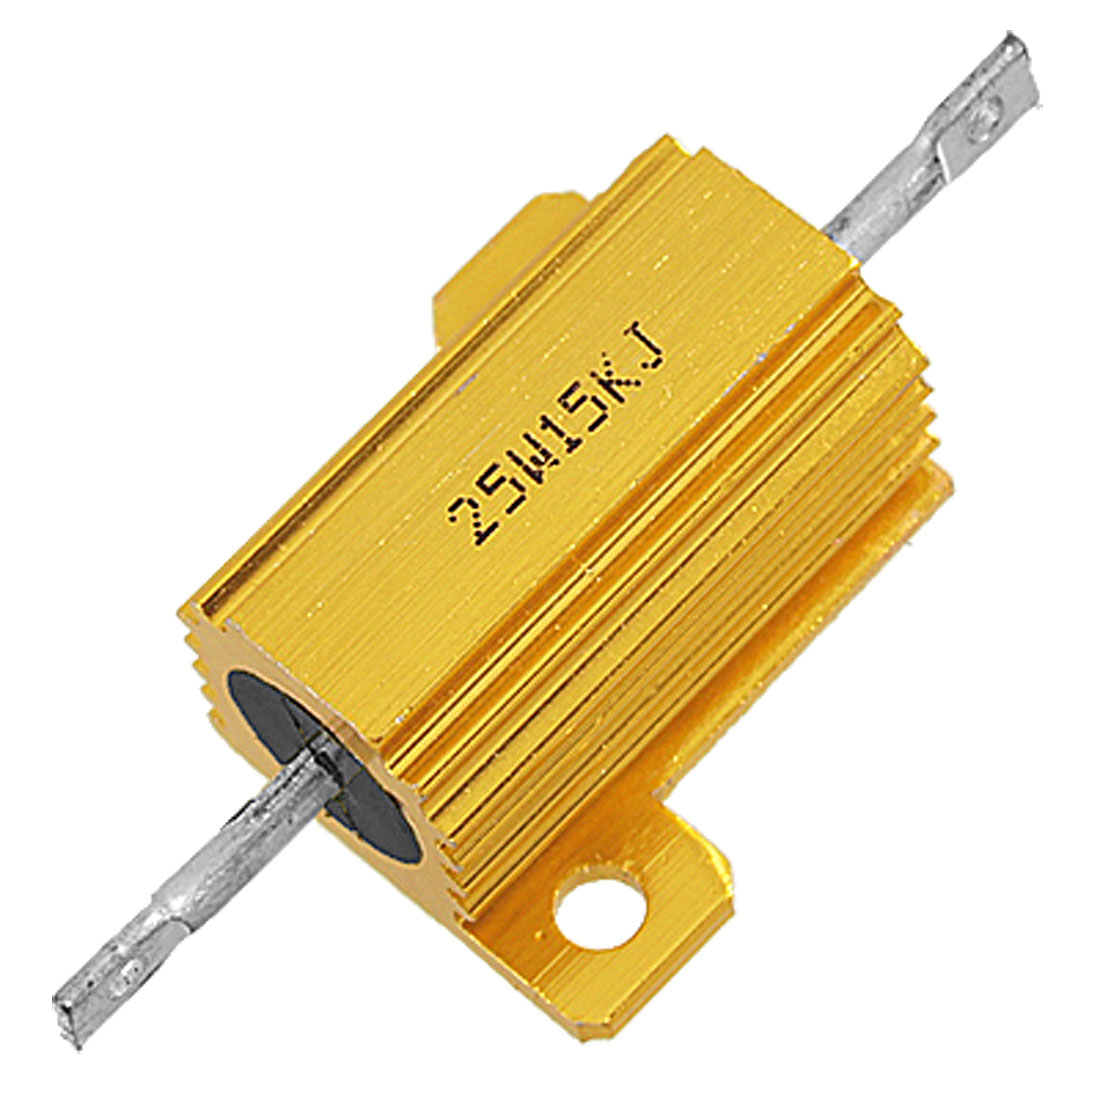 15K Ohm 5% Screw Tap Mounted Aluminum Housed Wirewound Resistor 25W